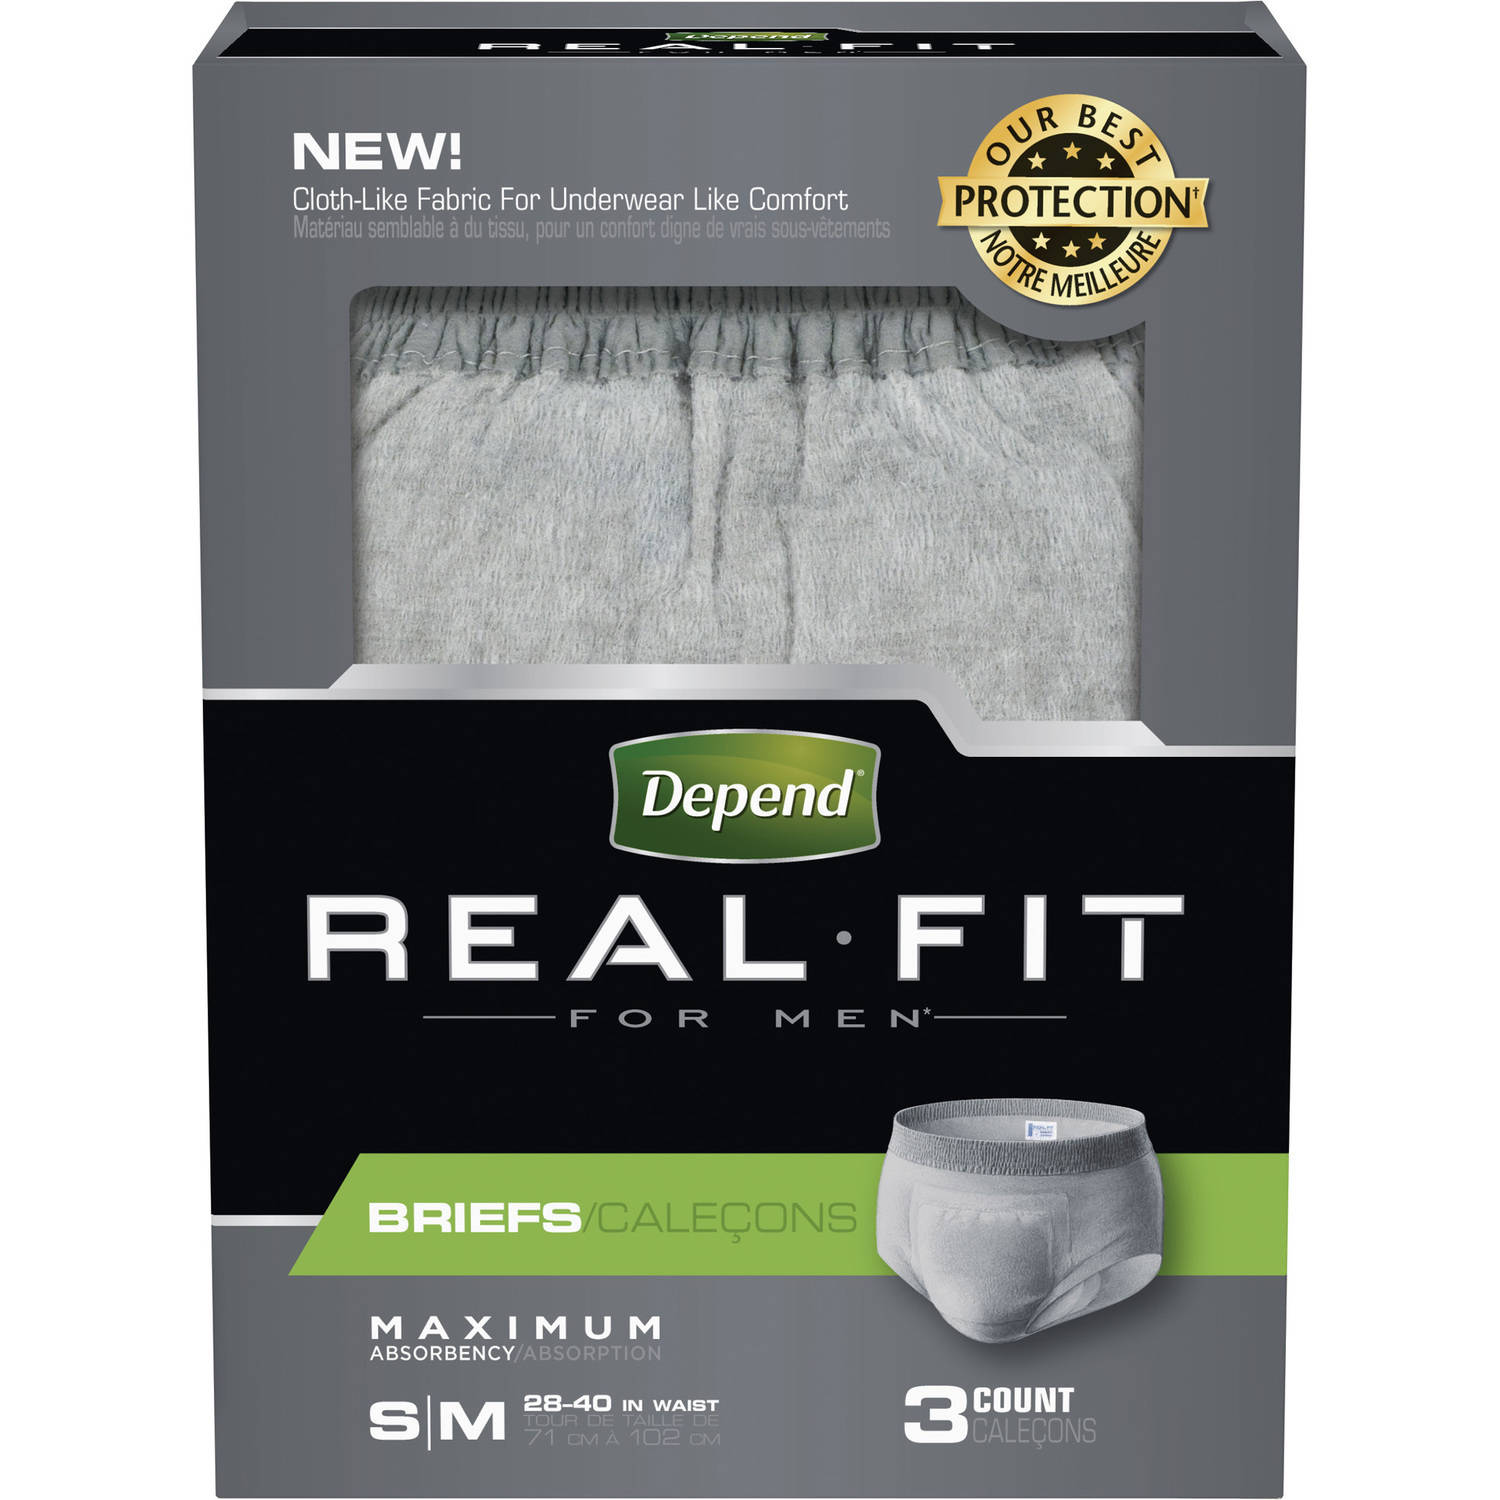 Real Fit for Men Briefs, Small/Medium, Pack/3